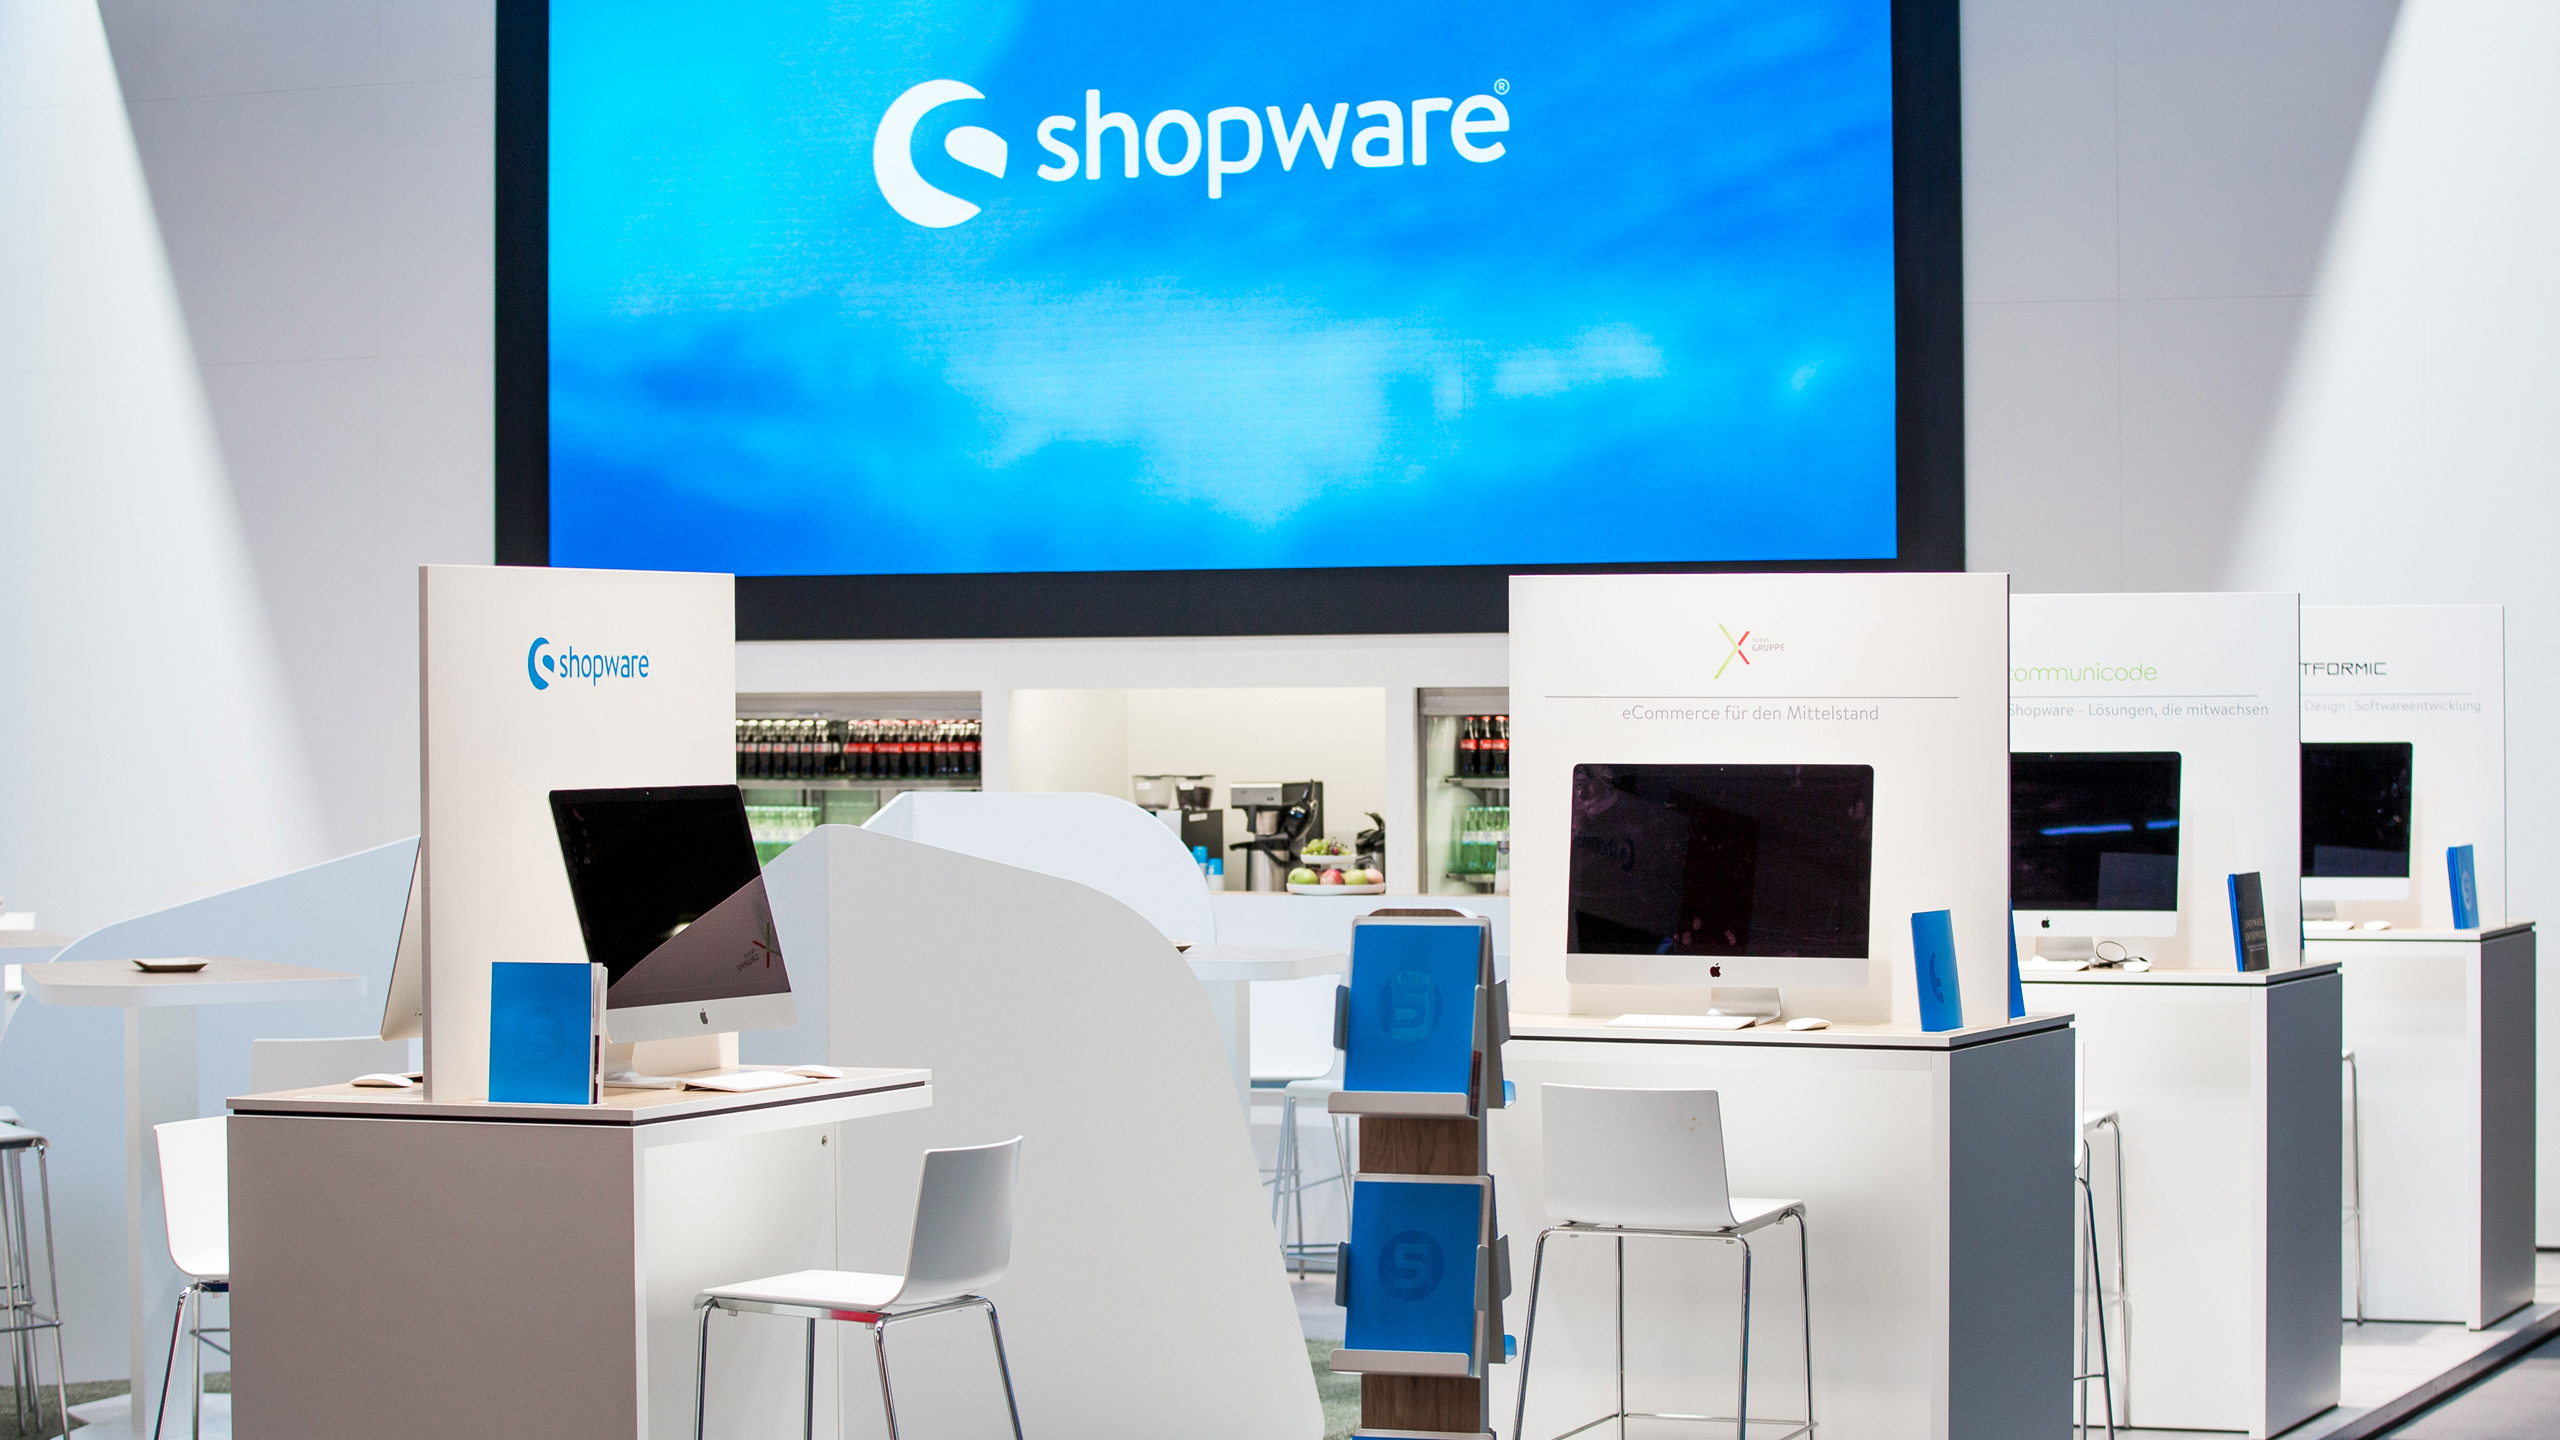 shopware Internet World Expo 04